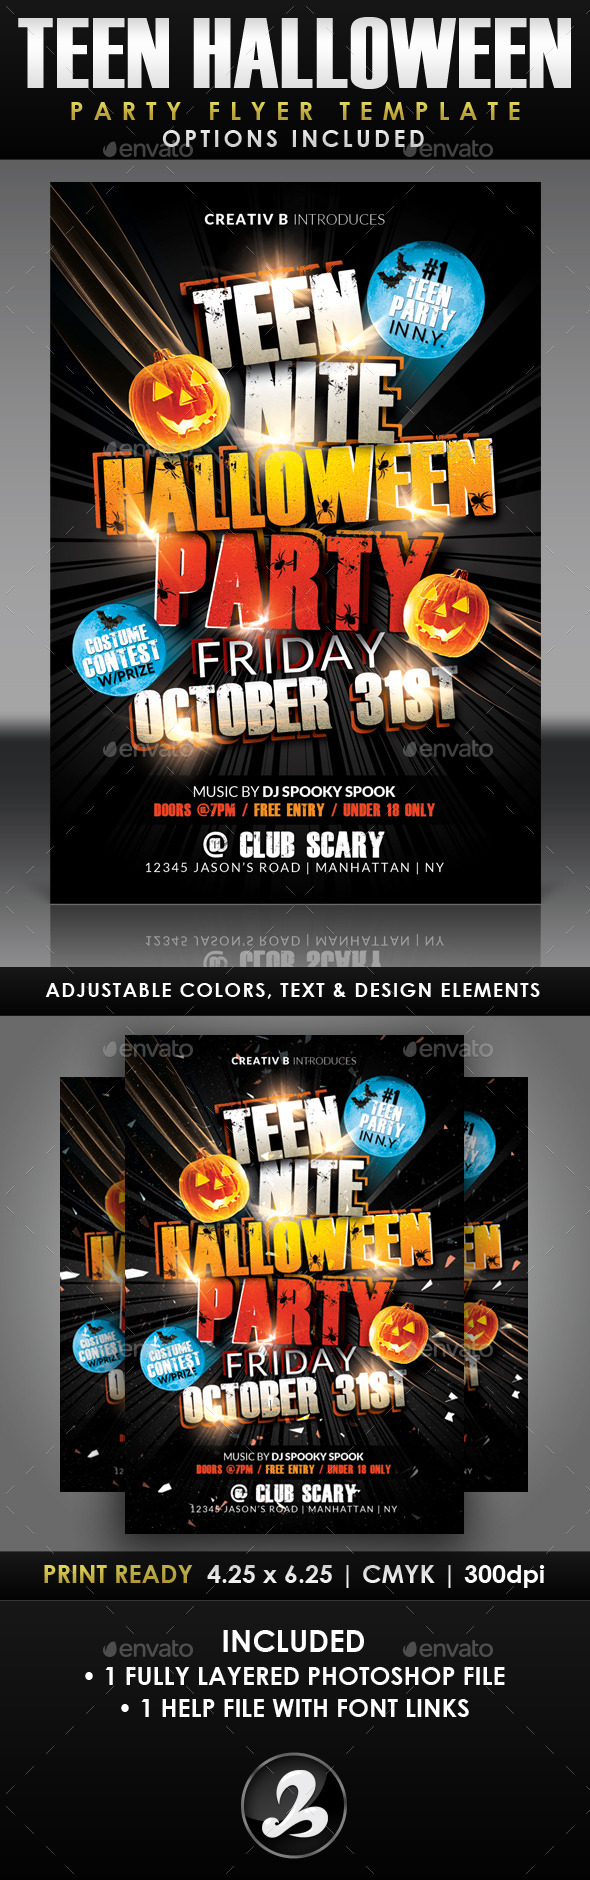 GraphicRiver Teen Night Halloween Party Flyer Template 8889428